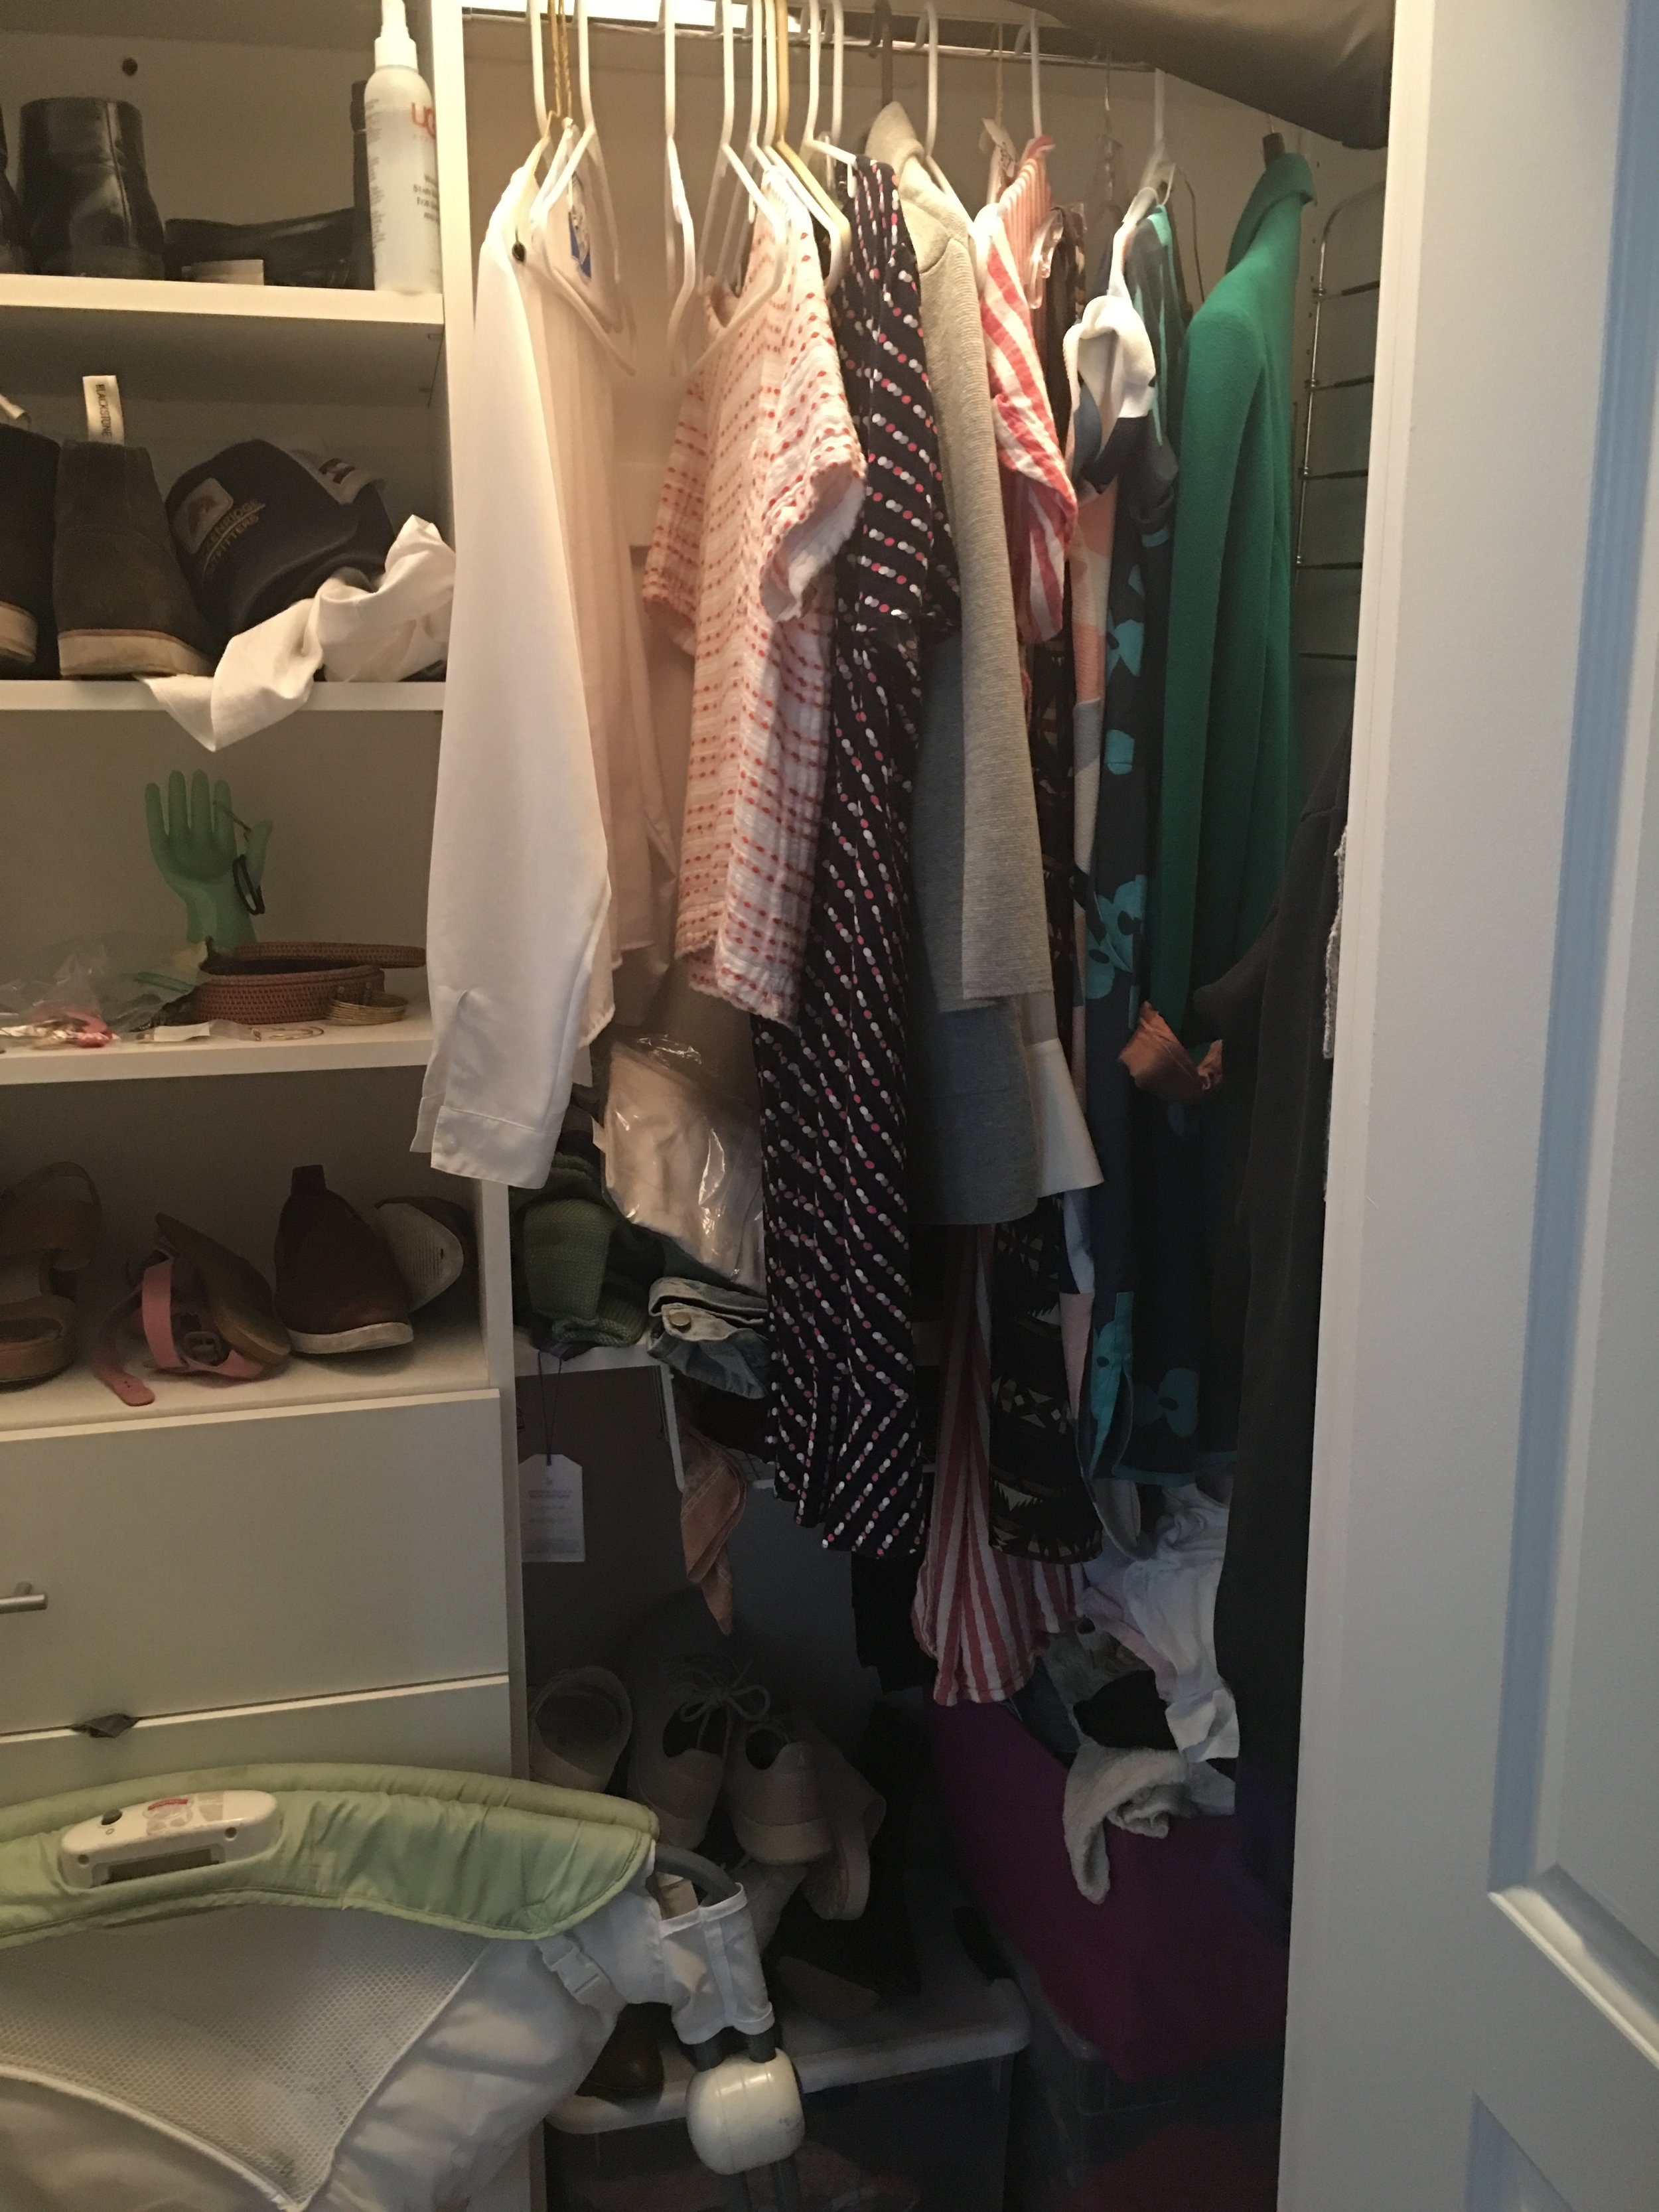 My closet, the former home of random baby items and weird-fitting Target dresses.